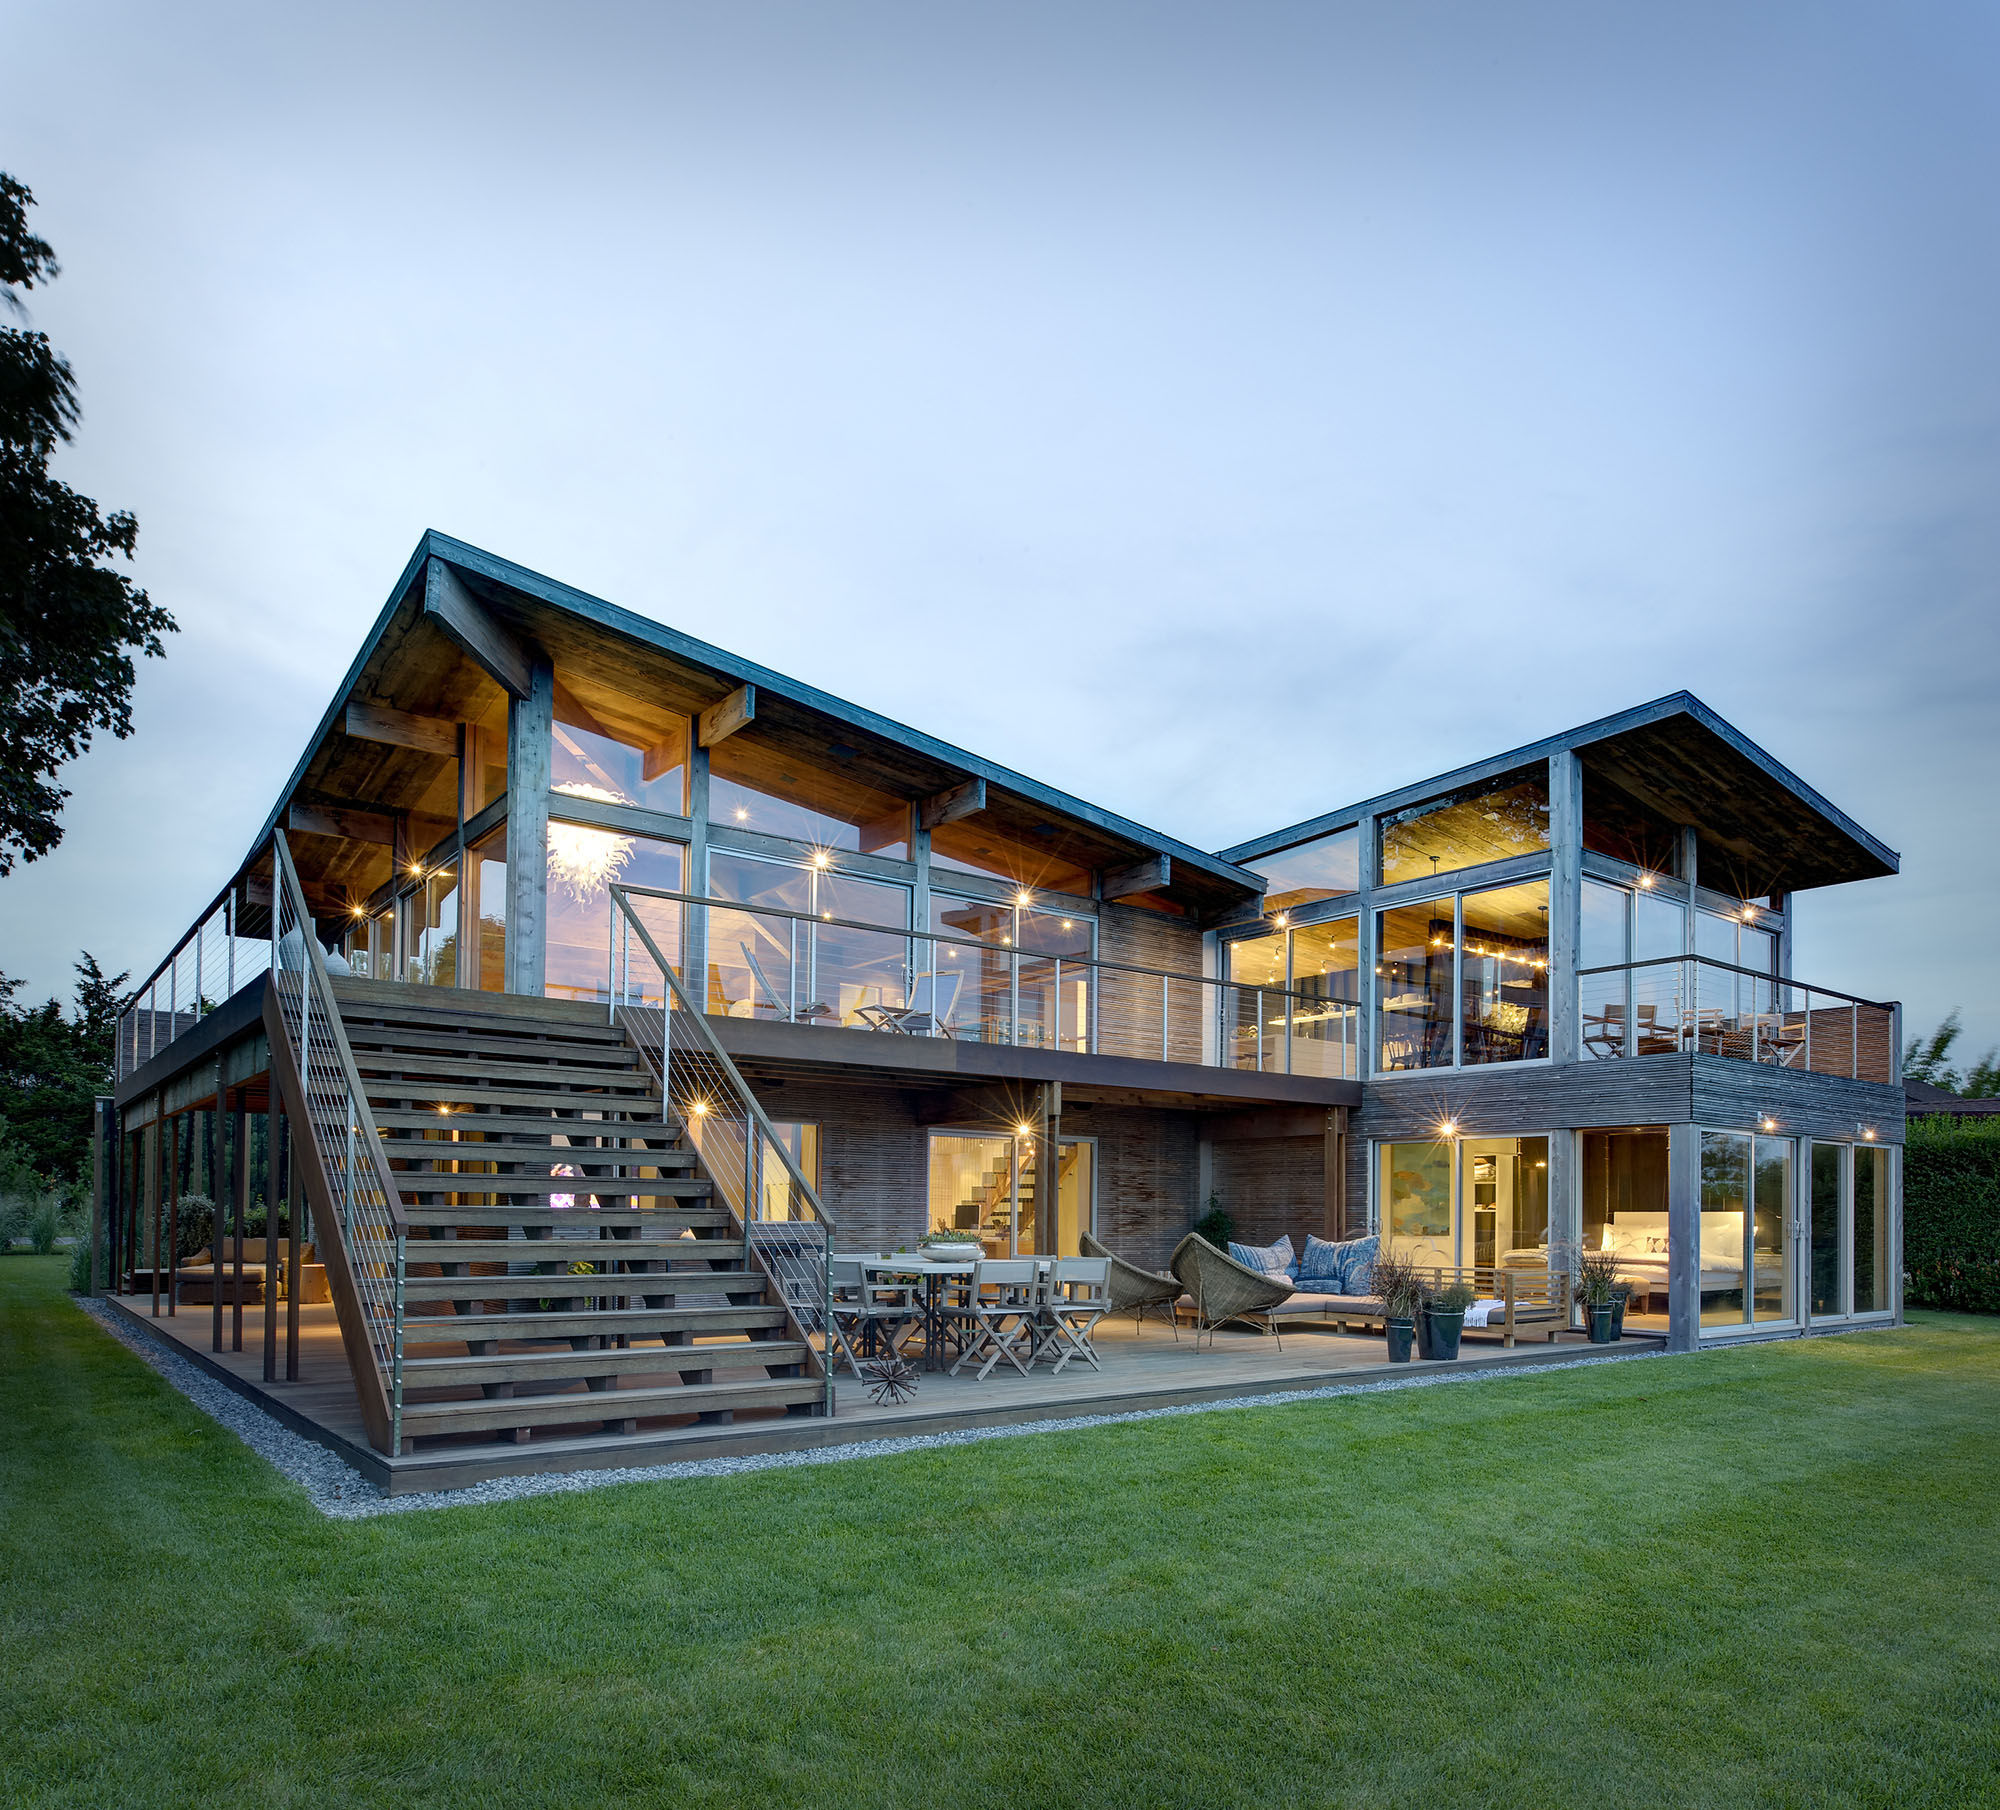 Long Beach Beach Houses: Hurricane-Proof Wood And Steel Waterfront Home On Long